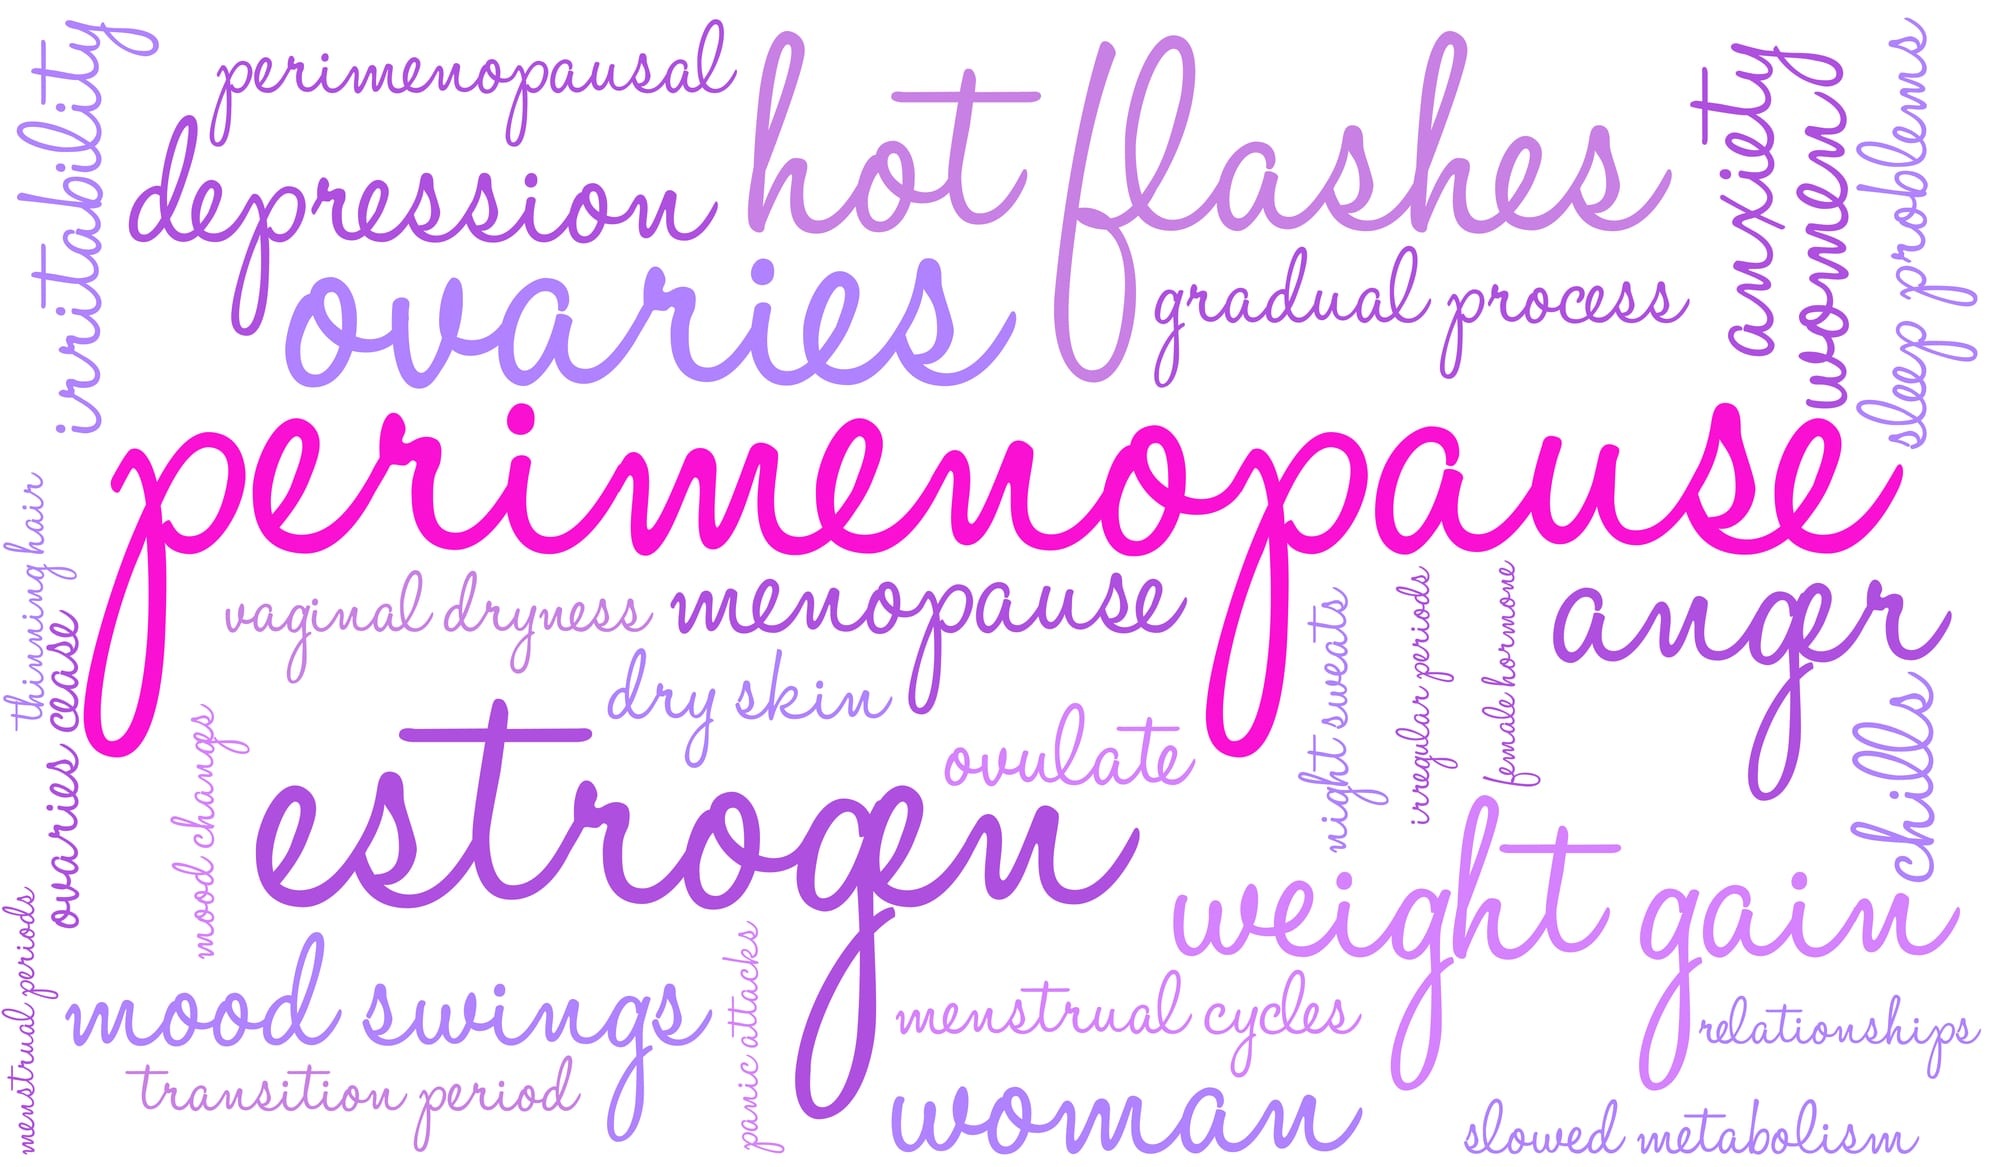 What should I know about menopause?